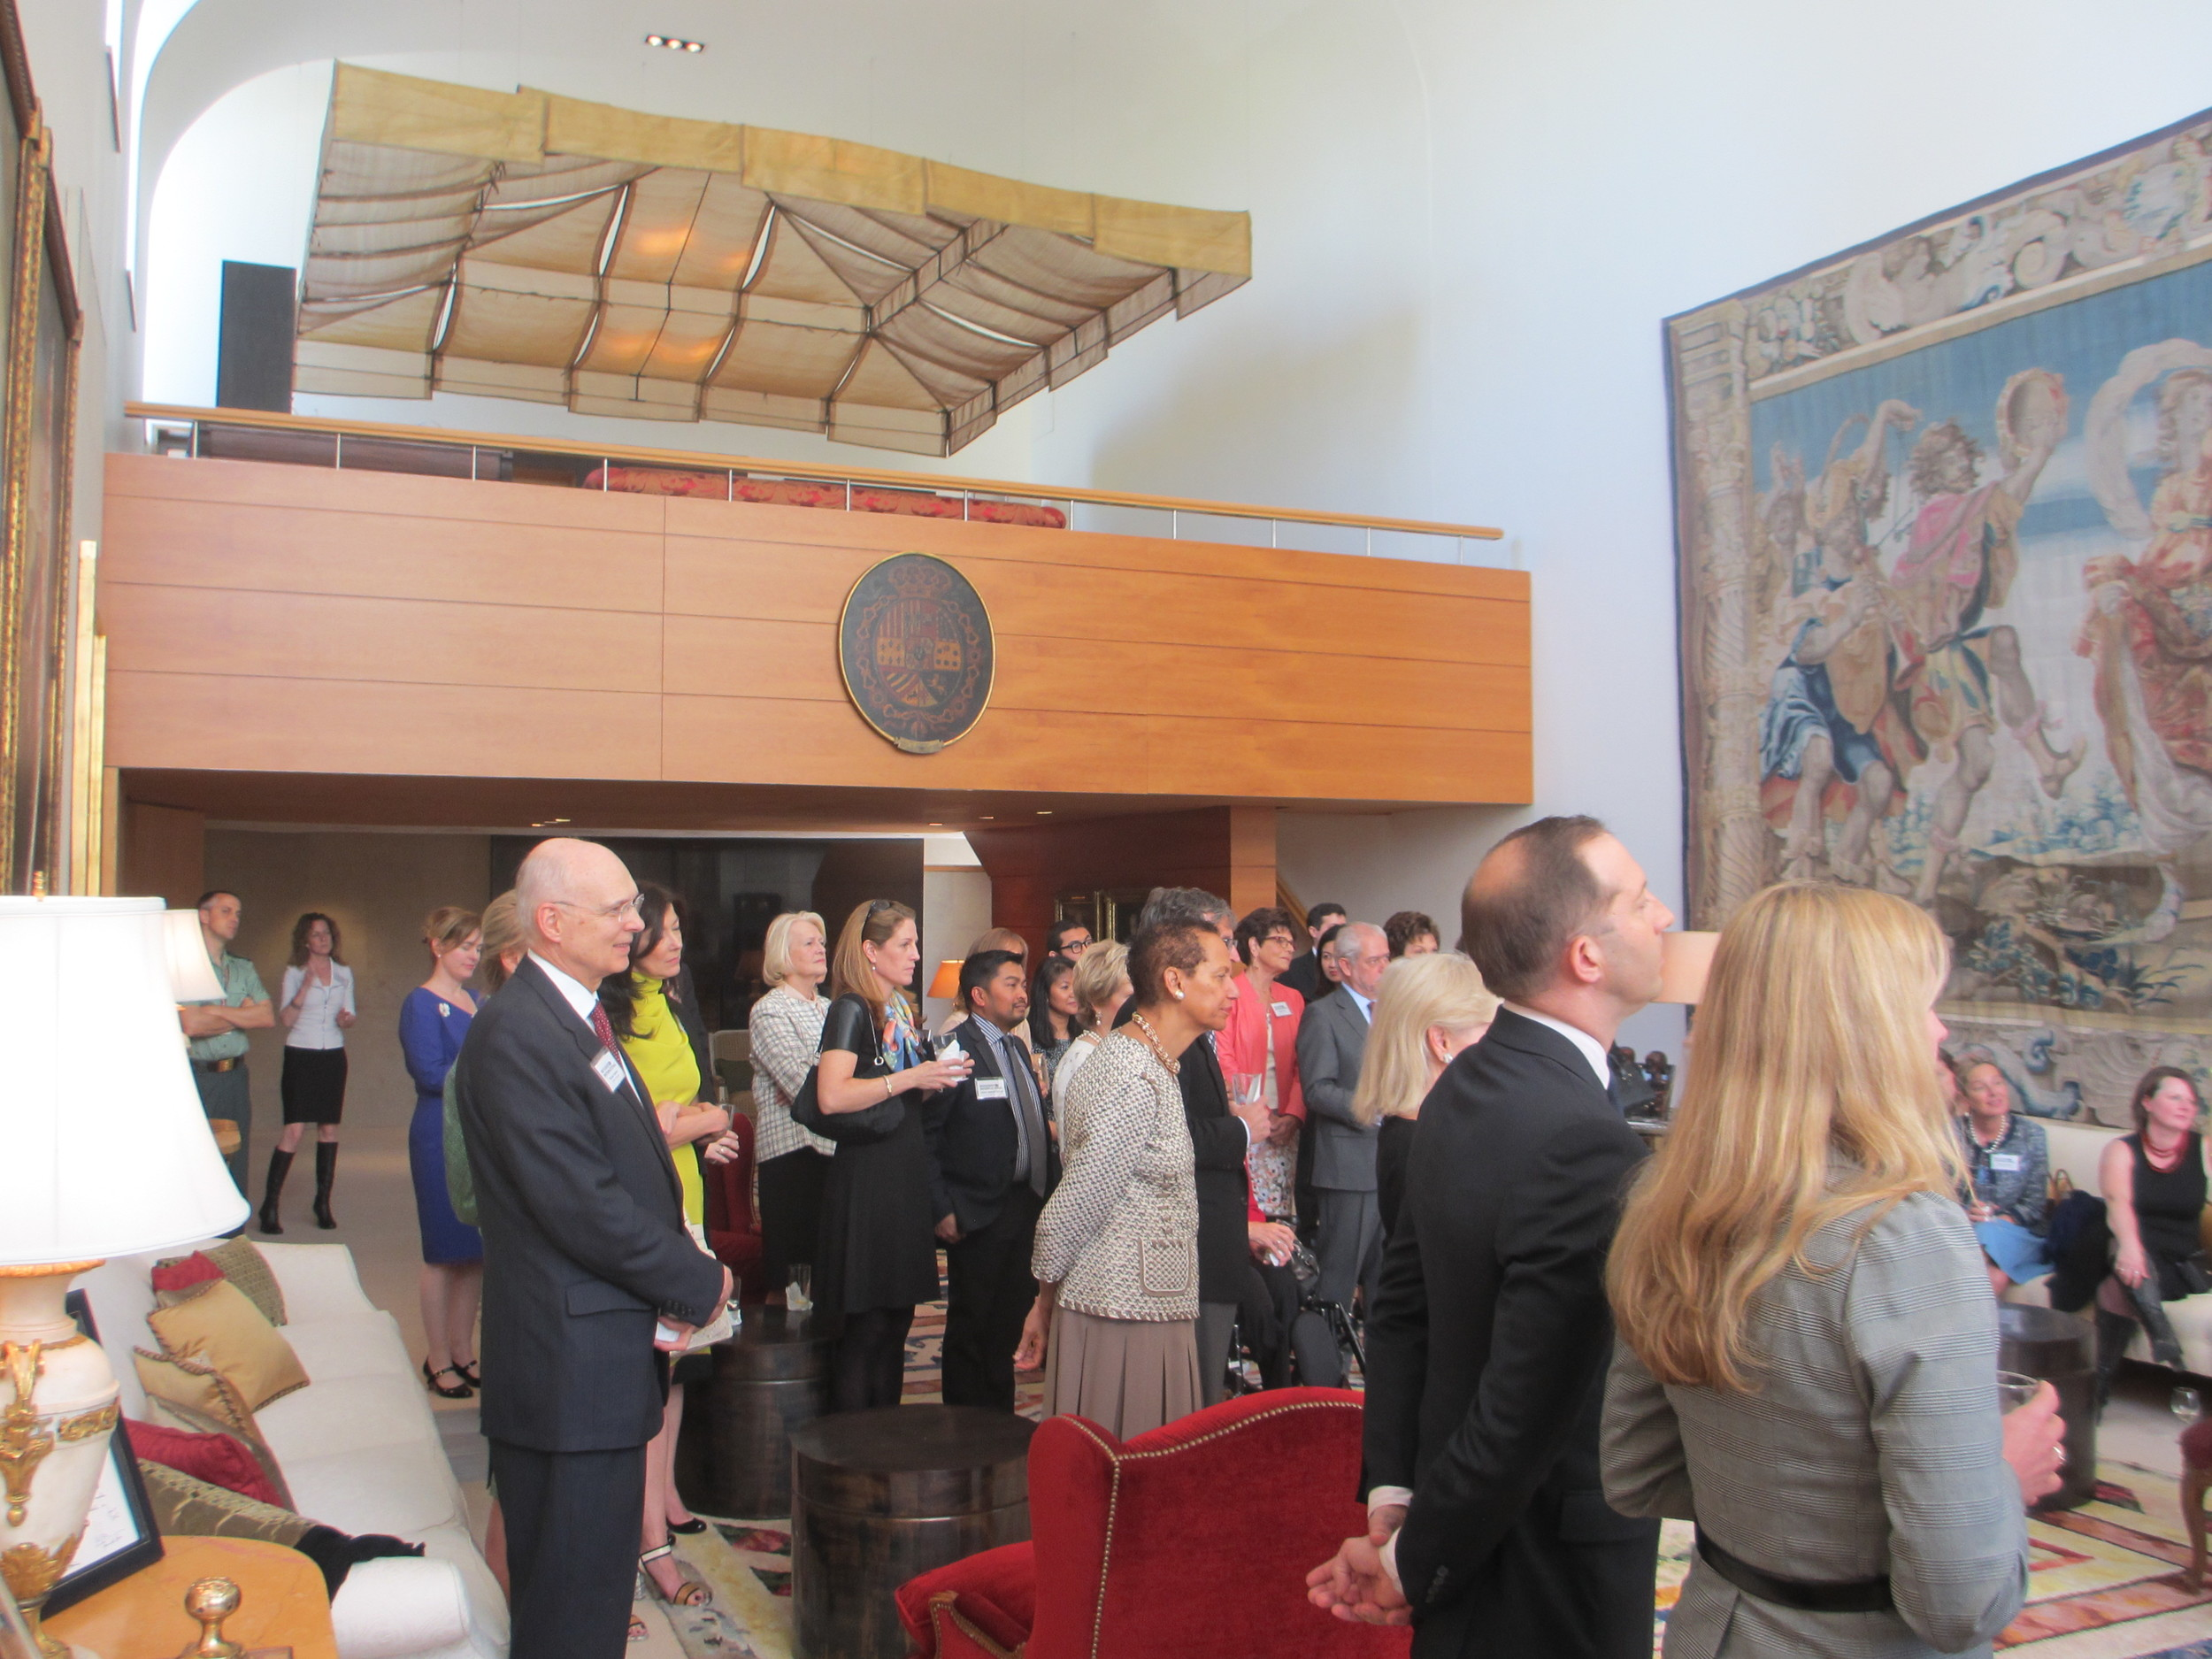 Attendees listen to the Ambassador of Spain speak about the importance of Refugees International